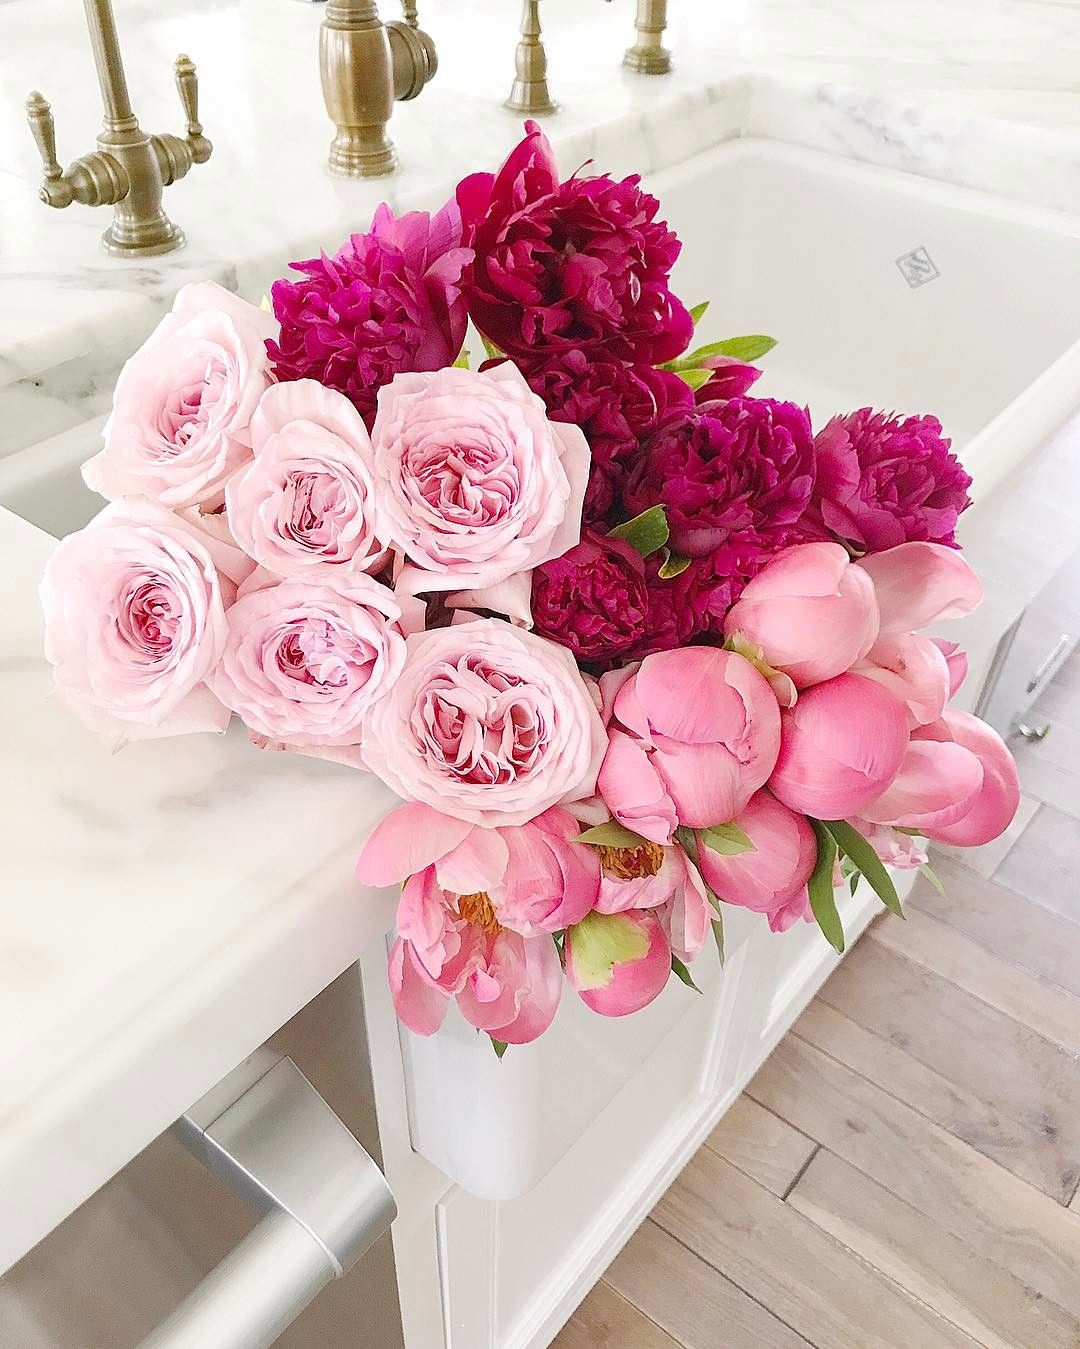 14 2k Likes 156 Comments Rach Parcell Pink Peonies Rachparcell